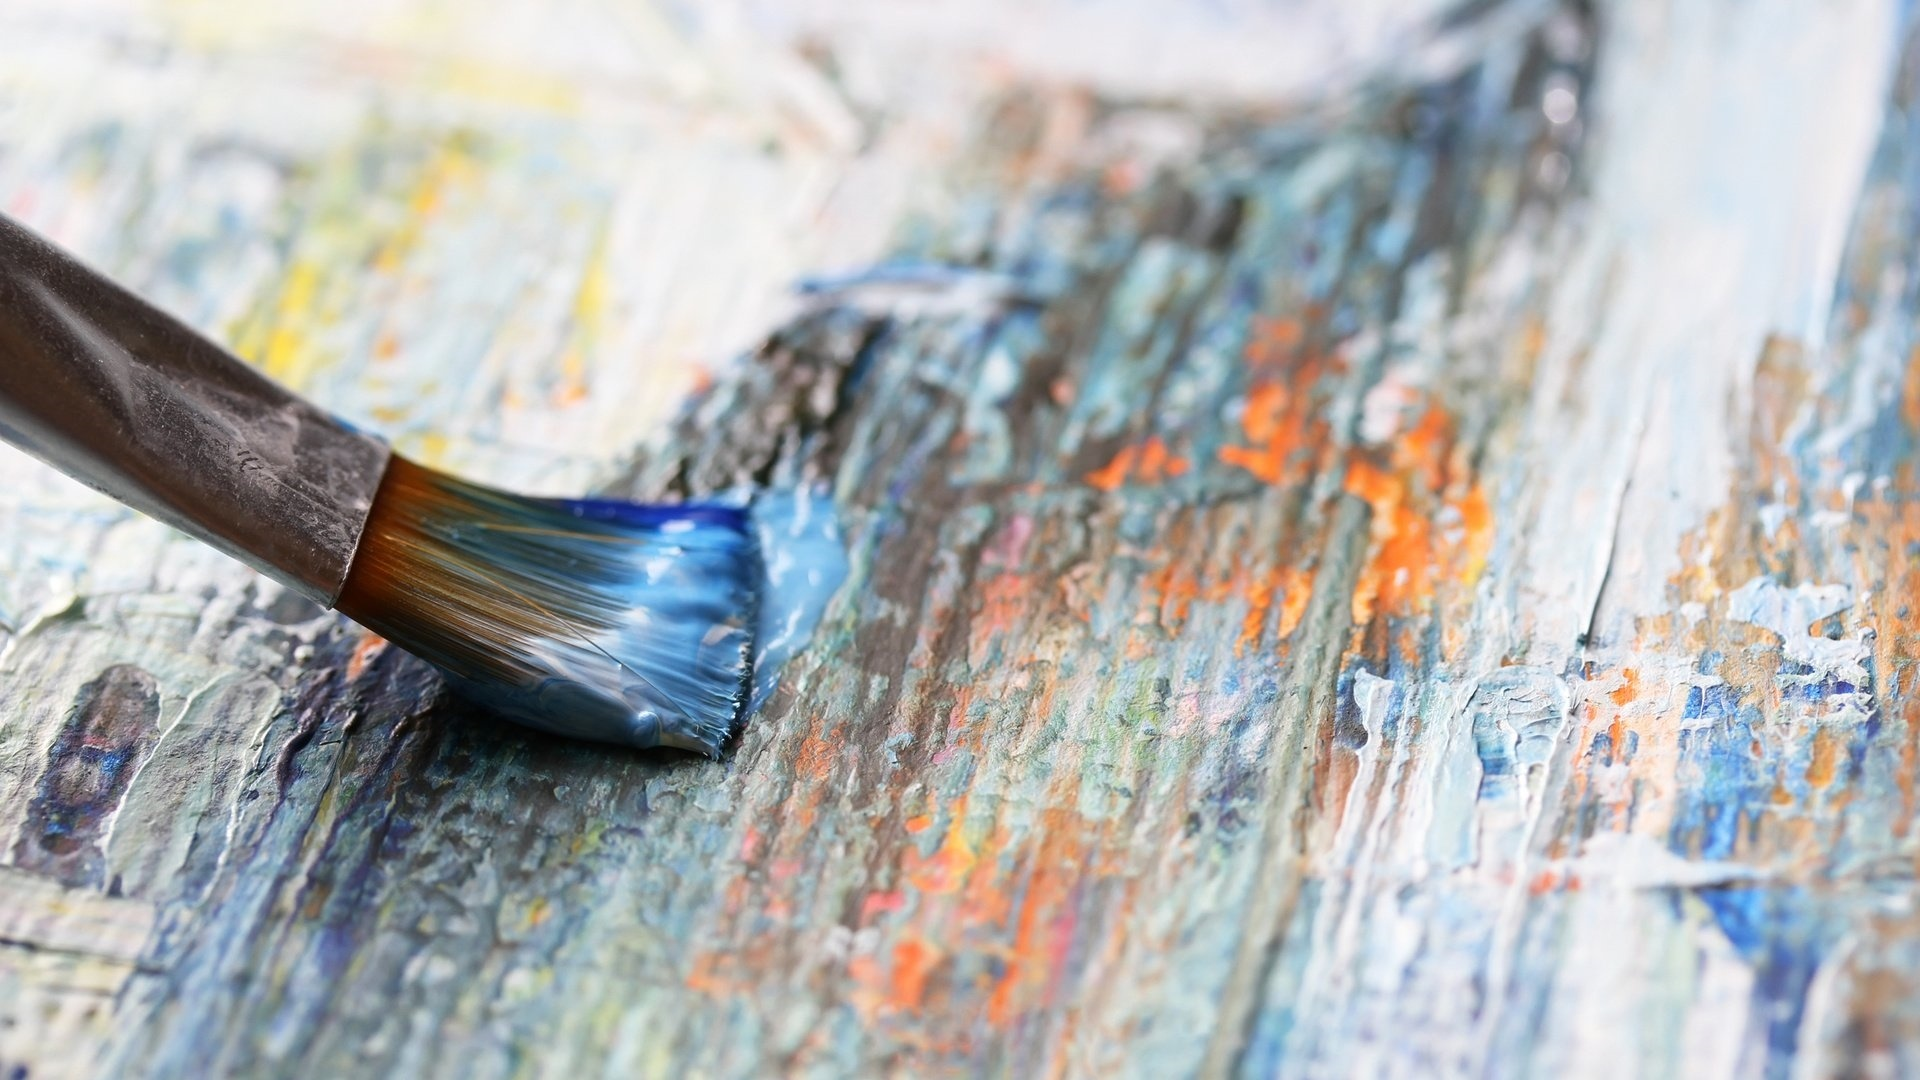 Brushes And Paint wallpaper for desktop